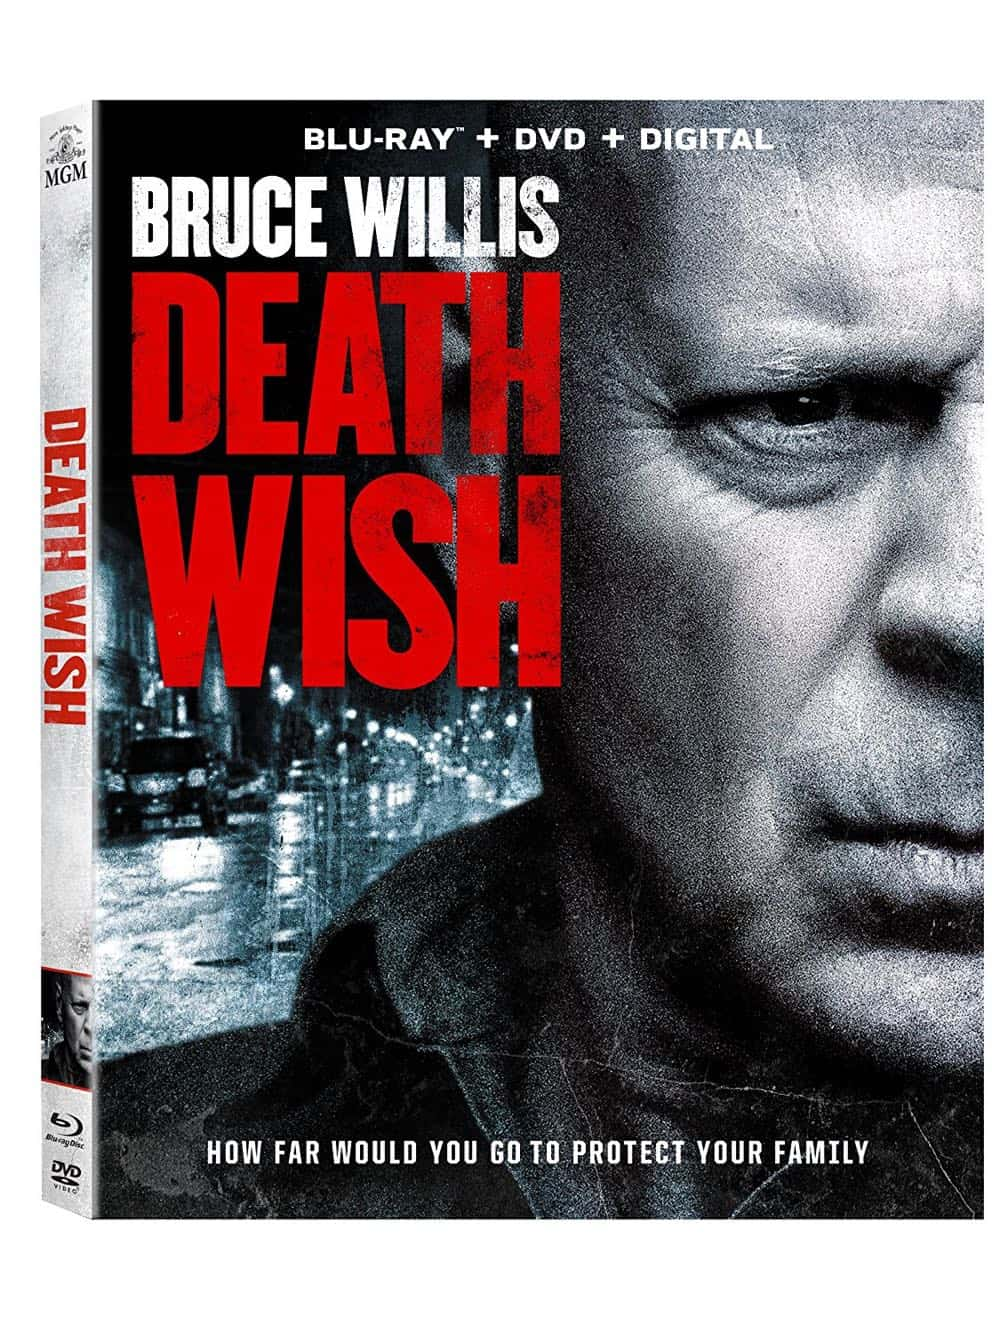 Death Wish Blu-ray + DVD + Digital Bruce Willis 2018